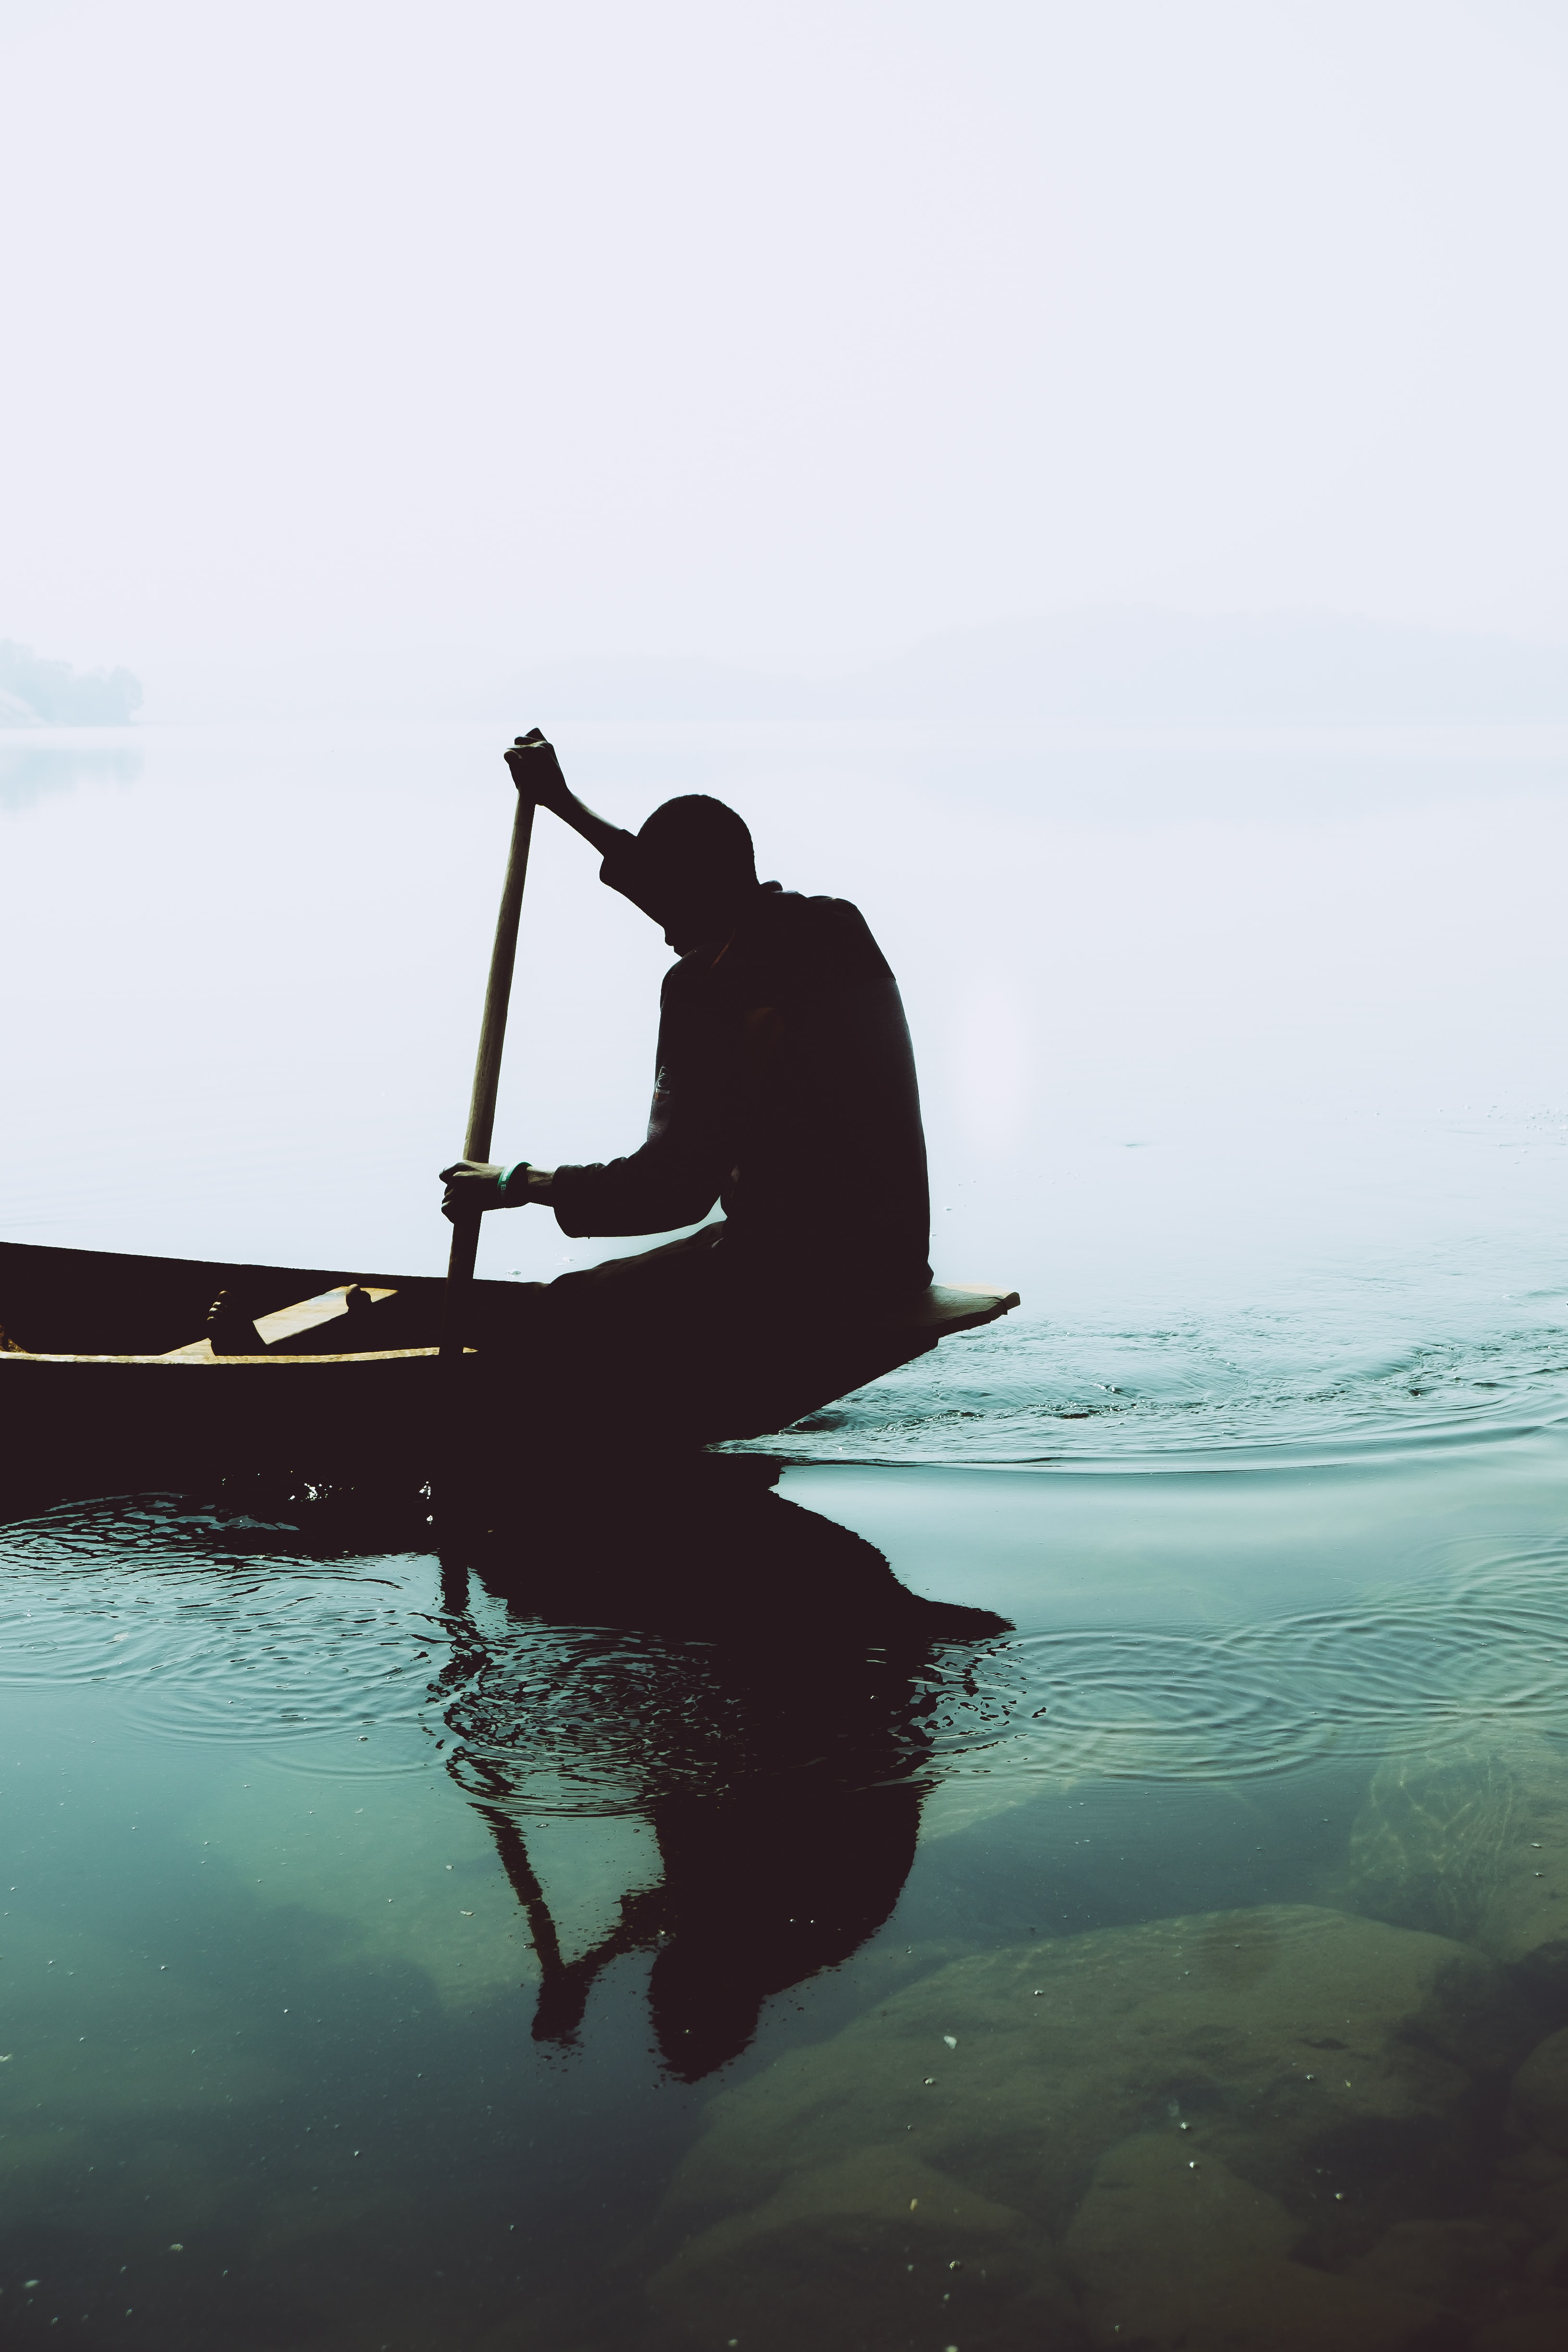 silhouette photography of person riding on jon boat